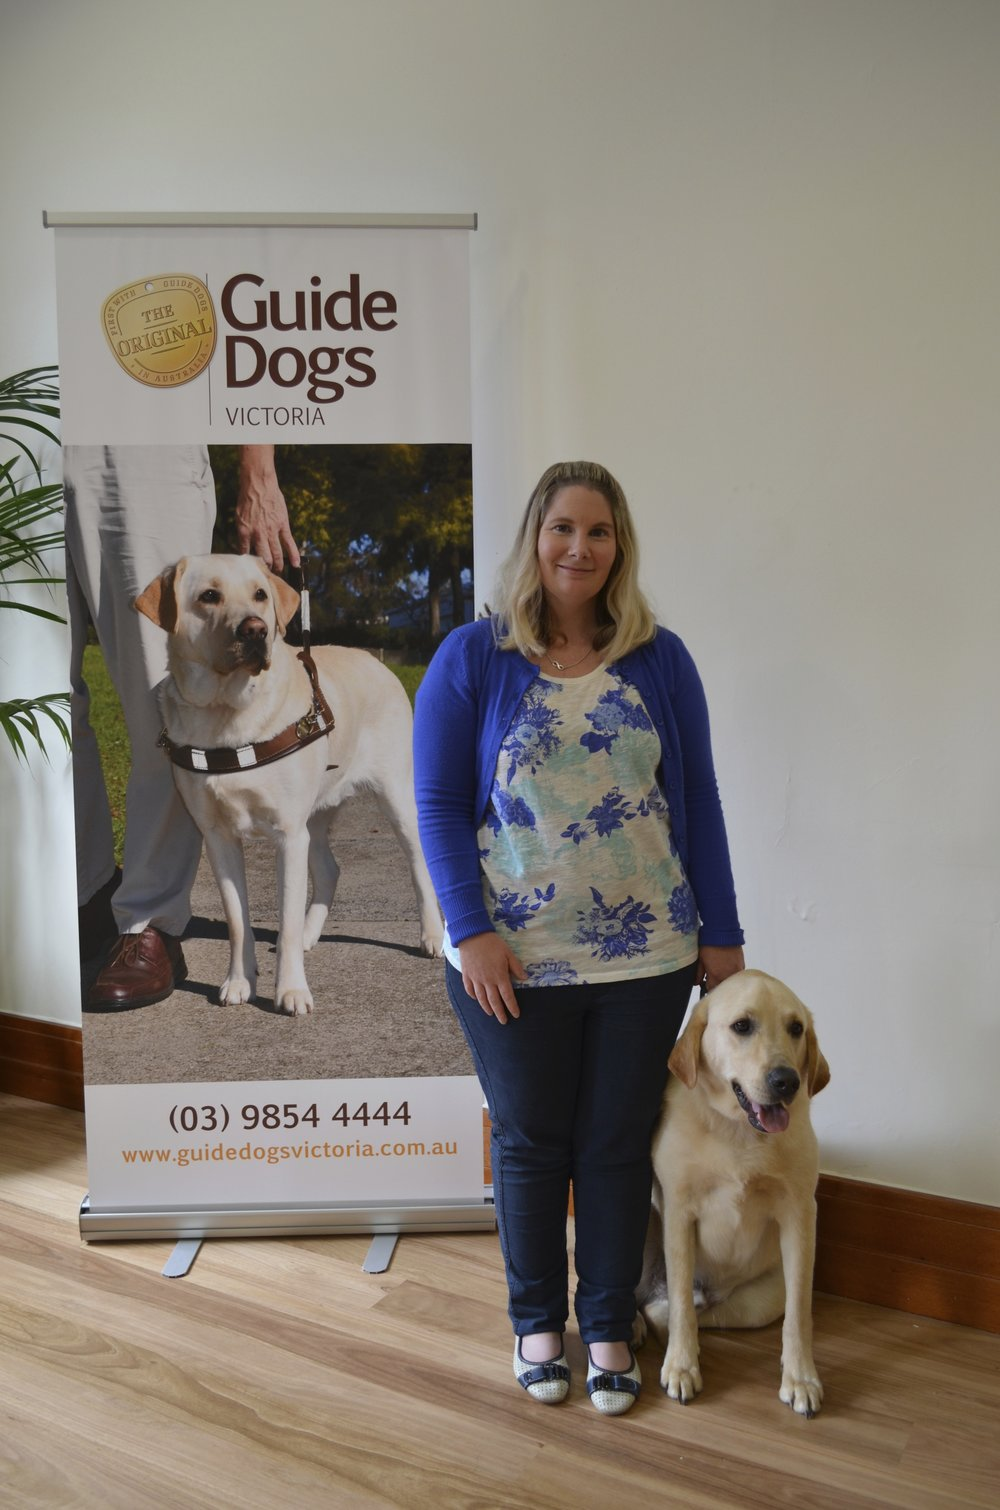 Guide Dogs Victoria Graduation Ceremony - Kelly Mandemaker and Selwyn the 'Companion Dog' formally become a partnership for the Austin Hospital School's Therapy Dog Program for Inpatients and Outpatients of the Child and Adolescent Mental Health Service (CAMHS) and The Austin School.Kelly founded this program in 2012.